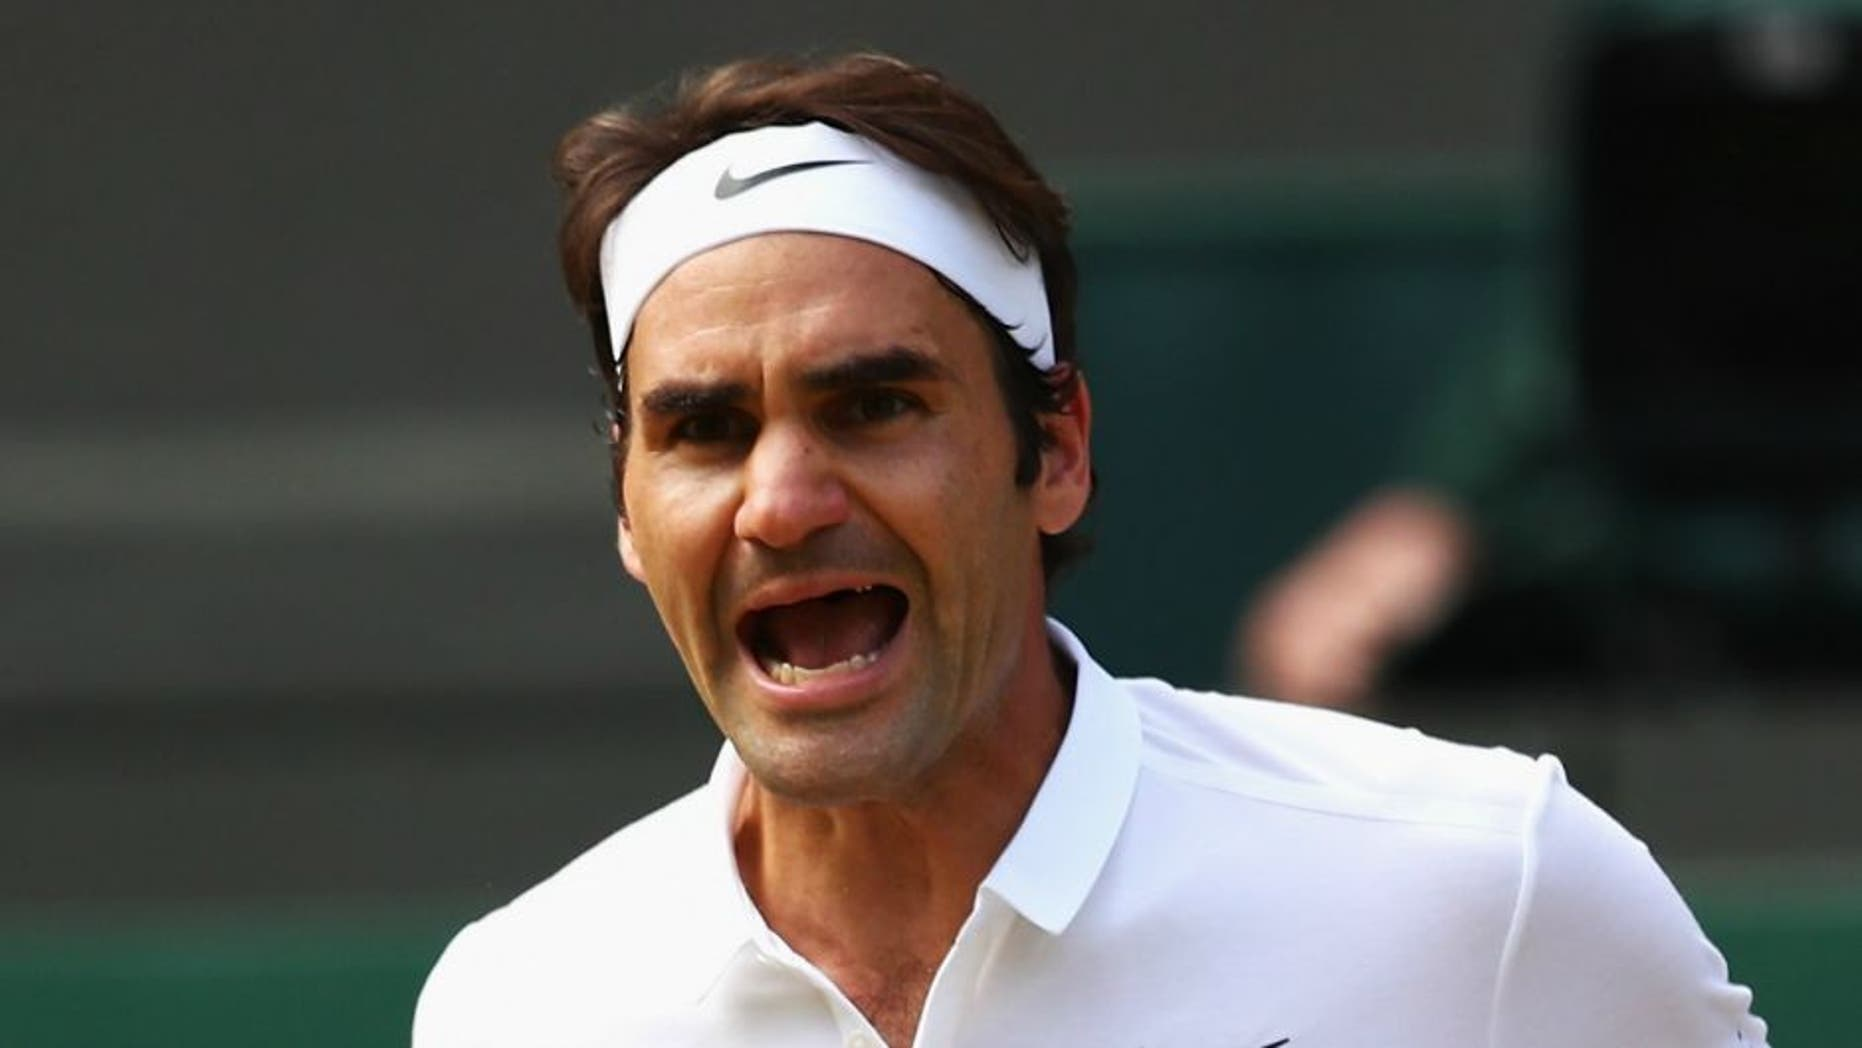 LONDON, ENGLAND - JULY 06: Roger Federer of Switzerland celebrates during the Men's Singles Quarter Finals match against Marin Cilic of Croatia on day nine of the Wimbledon Lawn Tennis Championships at the All England Lawn Tennis and Croquet Club on July 6, 2016 in London, England. (Photo by Clive Brunskill/Getty Images)